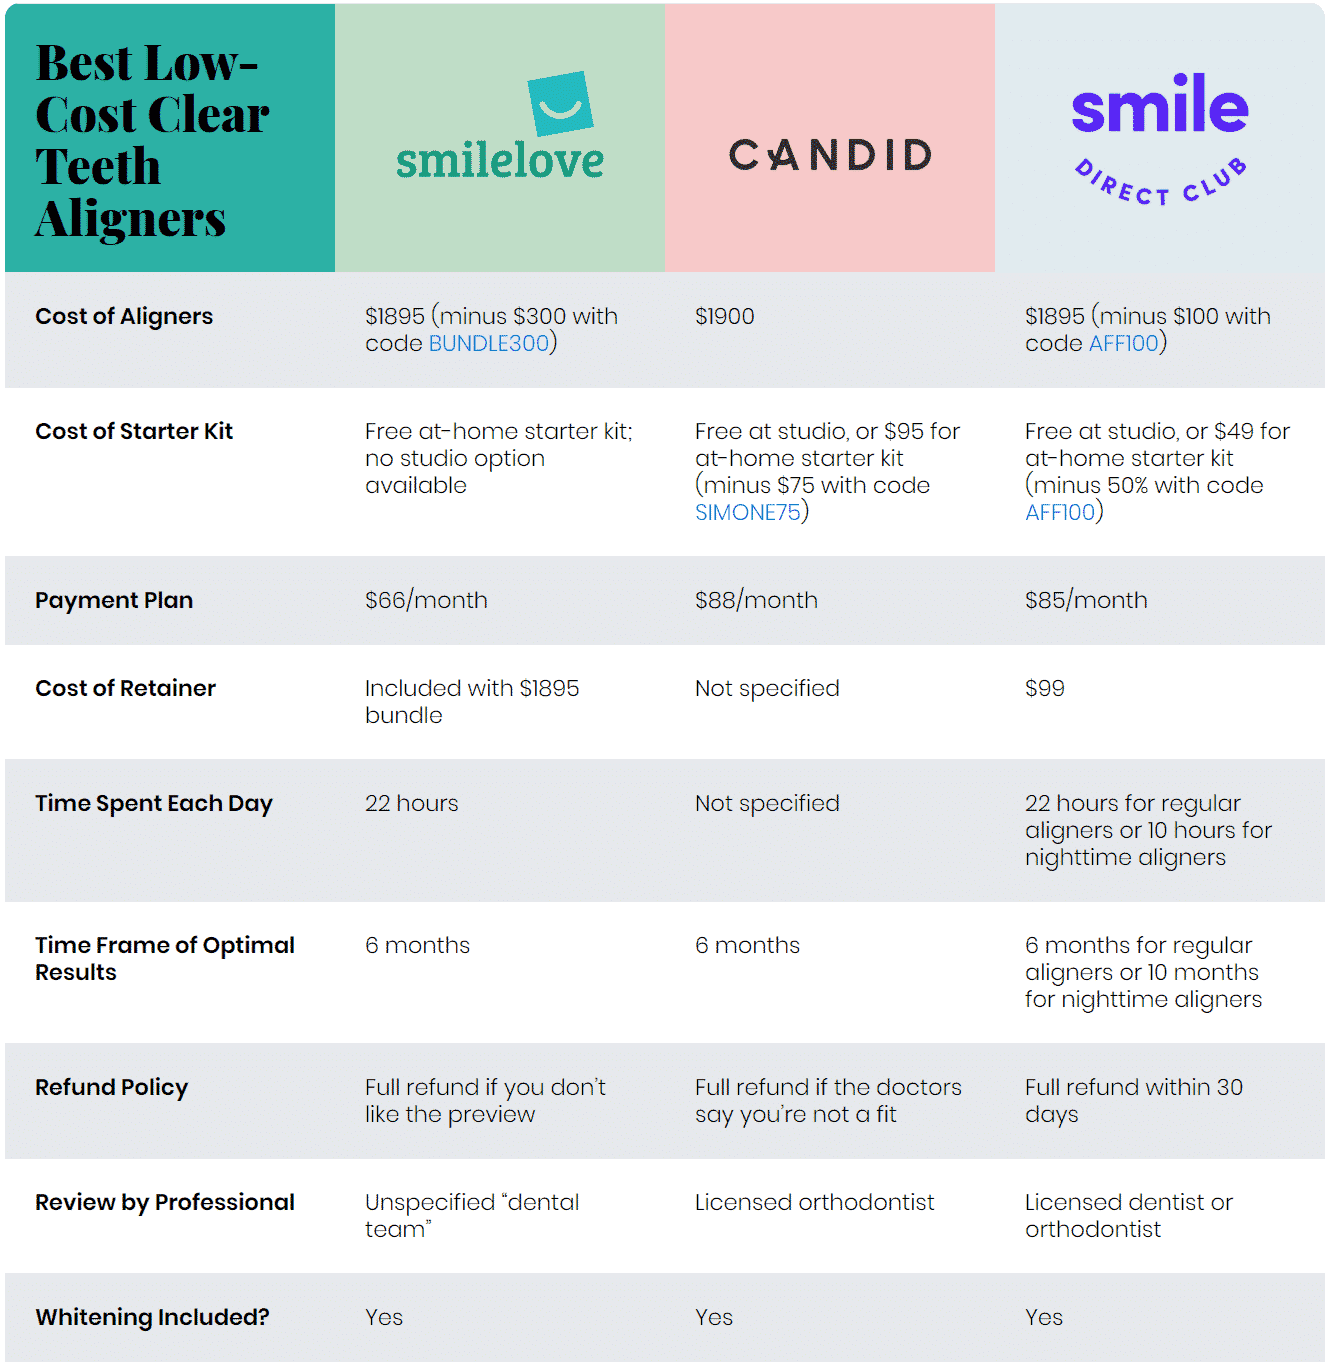 Smilelove vs Candid vs SmileDirectClub